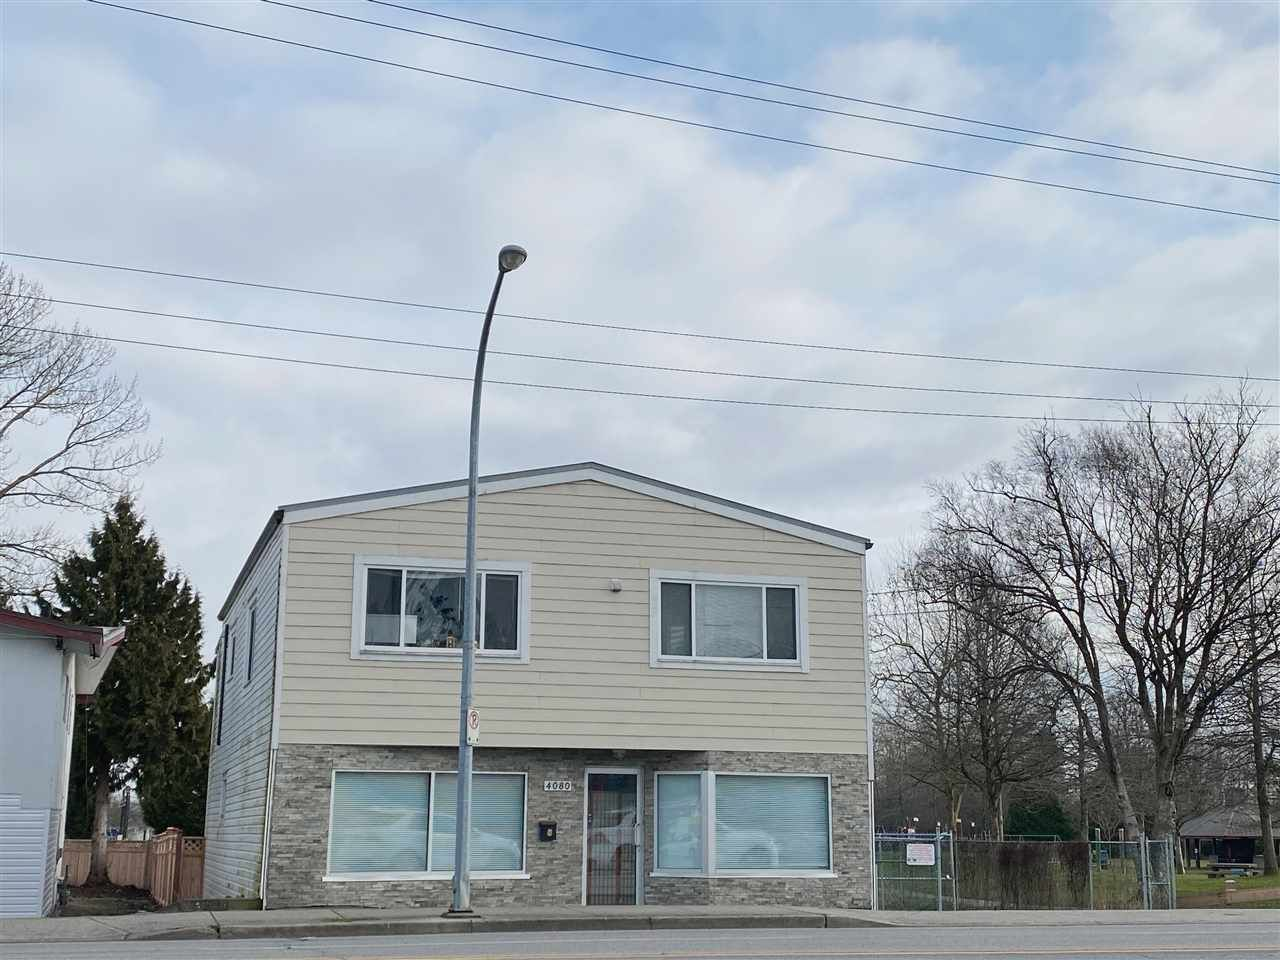 Main Photo: 4080 NO. 5 Road in Richmond: East Cambie Business with Property for sale : MLS®# C8036794